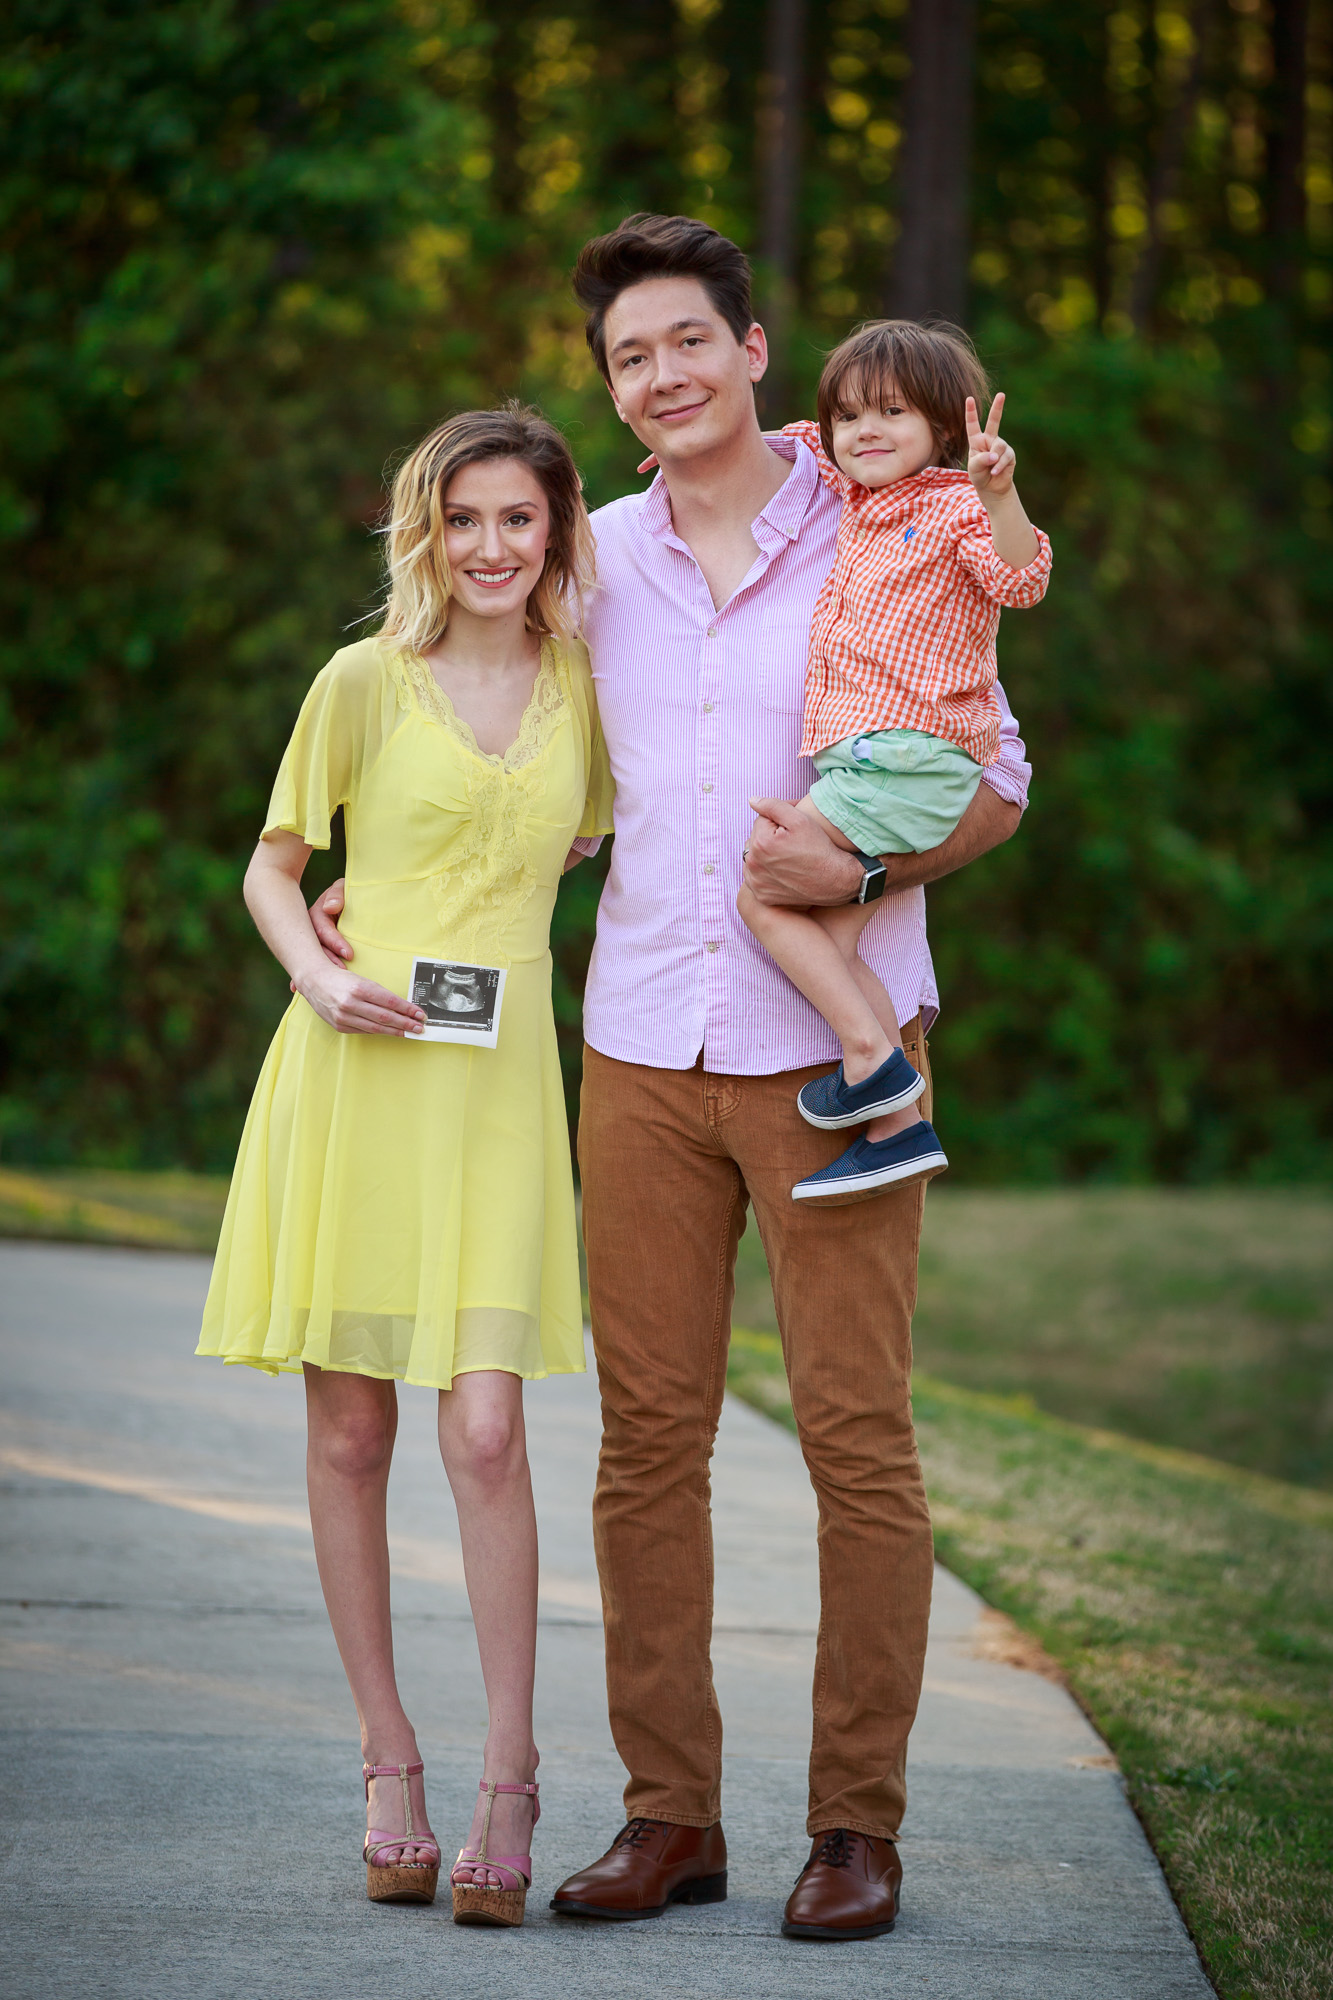 Fashion blogger, Jessica Linn of Linn Style, family photo pregnancy announcement with son and husband Joel Pagan , Jessica Linn is wearing a popular spring trend of pastel yellow and lace dress from ASOS.